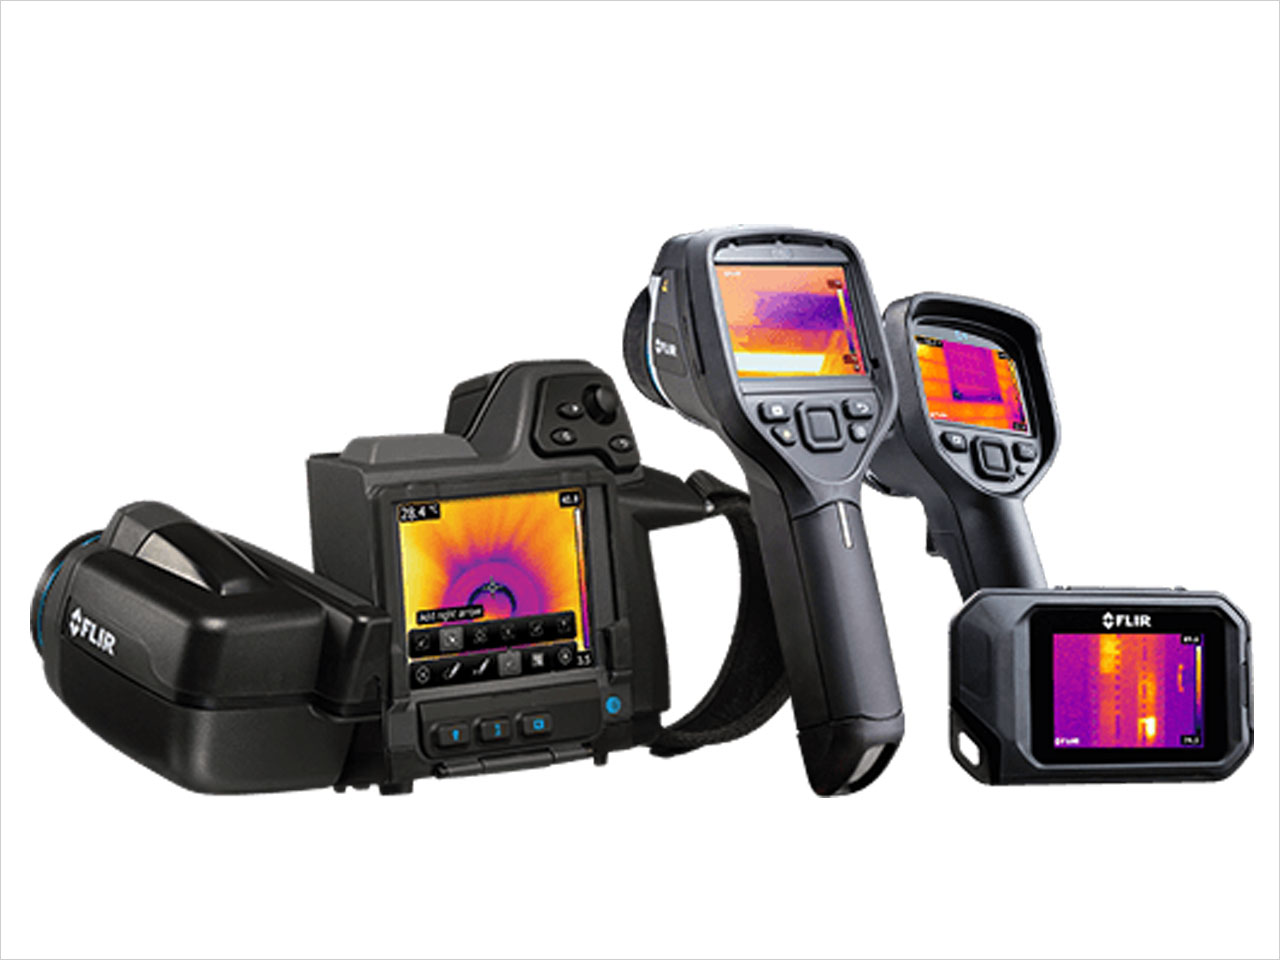 Thermography Solutions